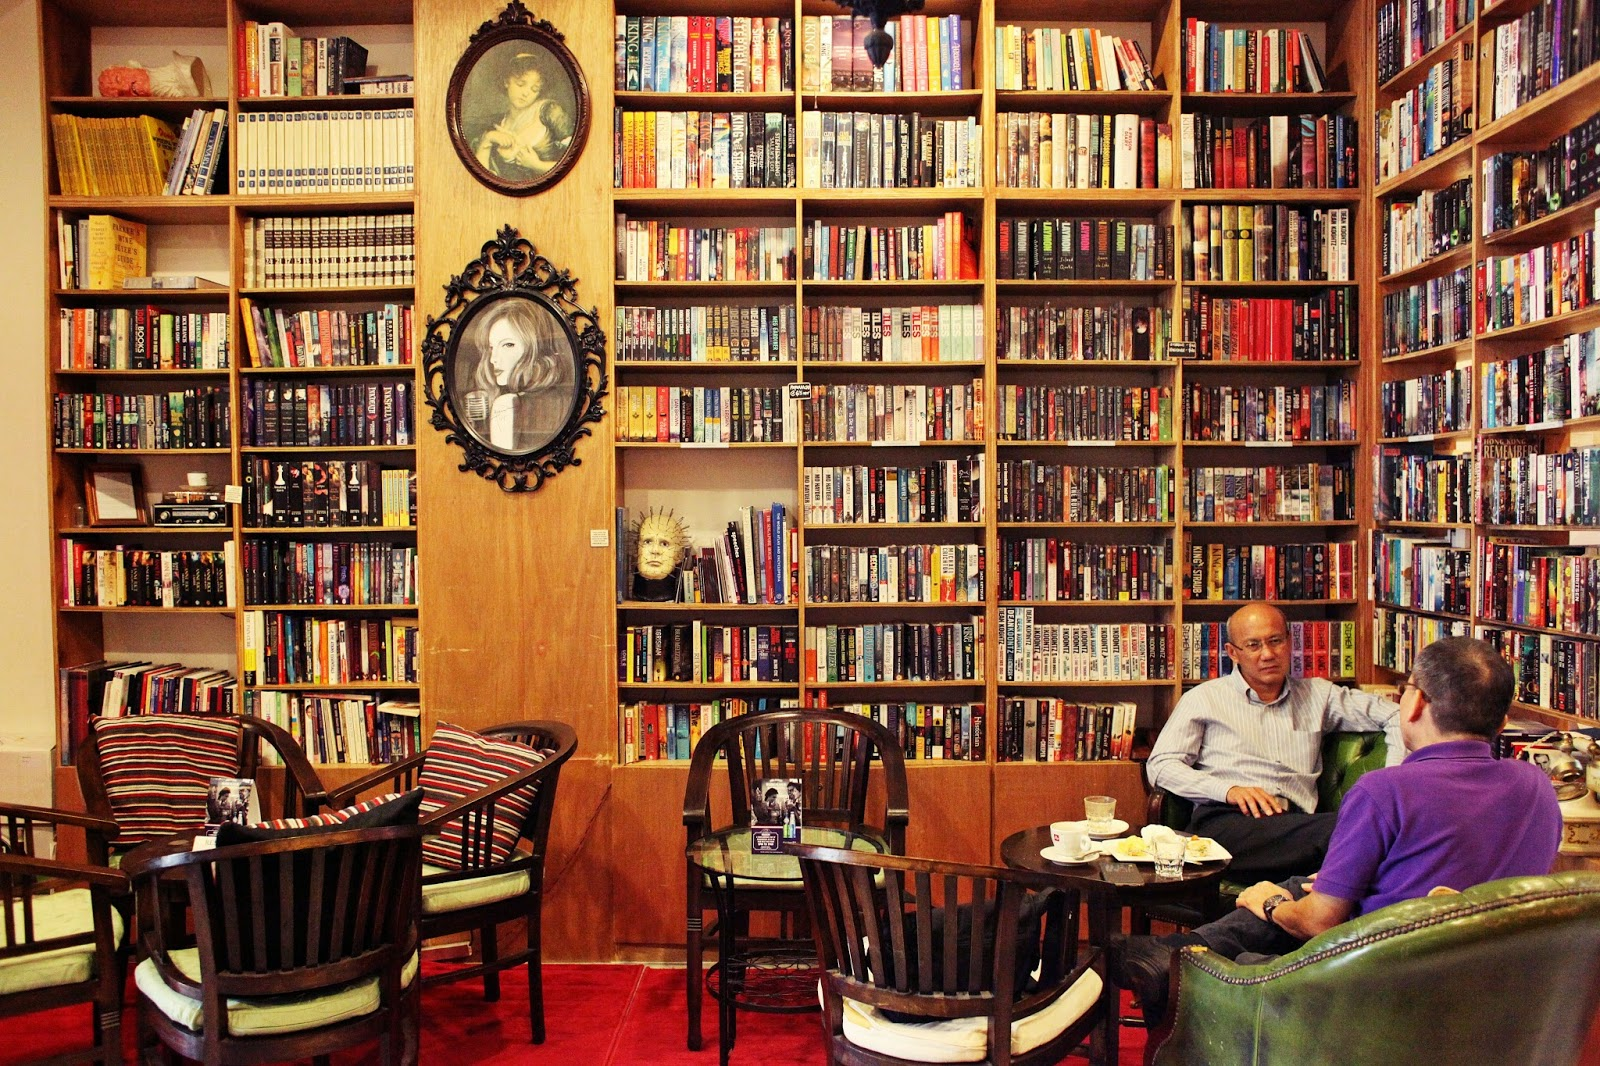 the reading room honesty is the best policy fundamentally flawed